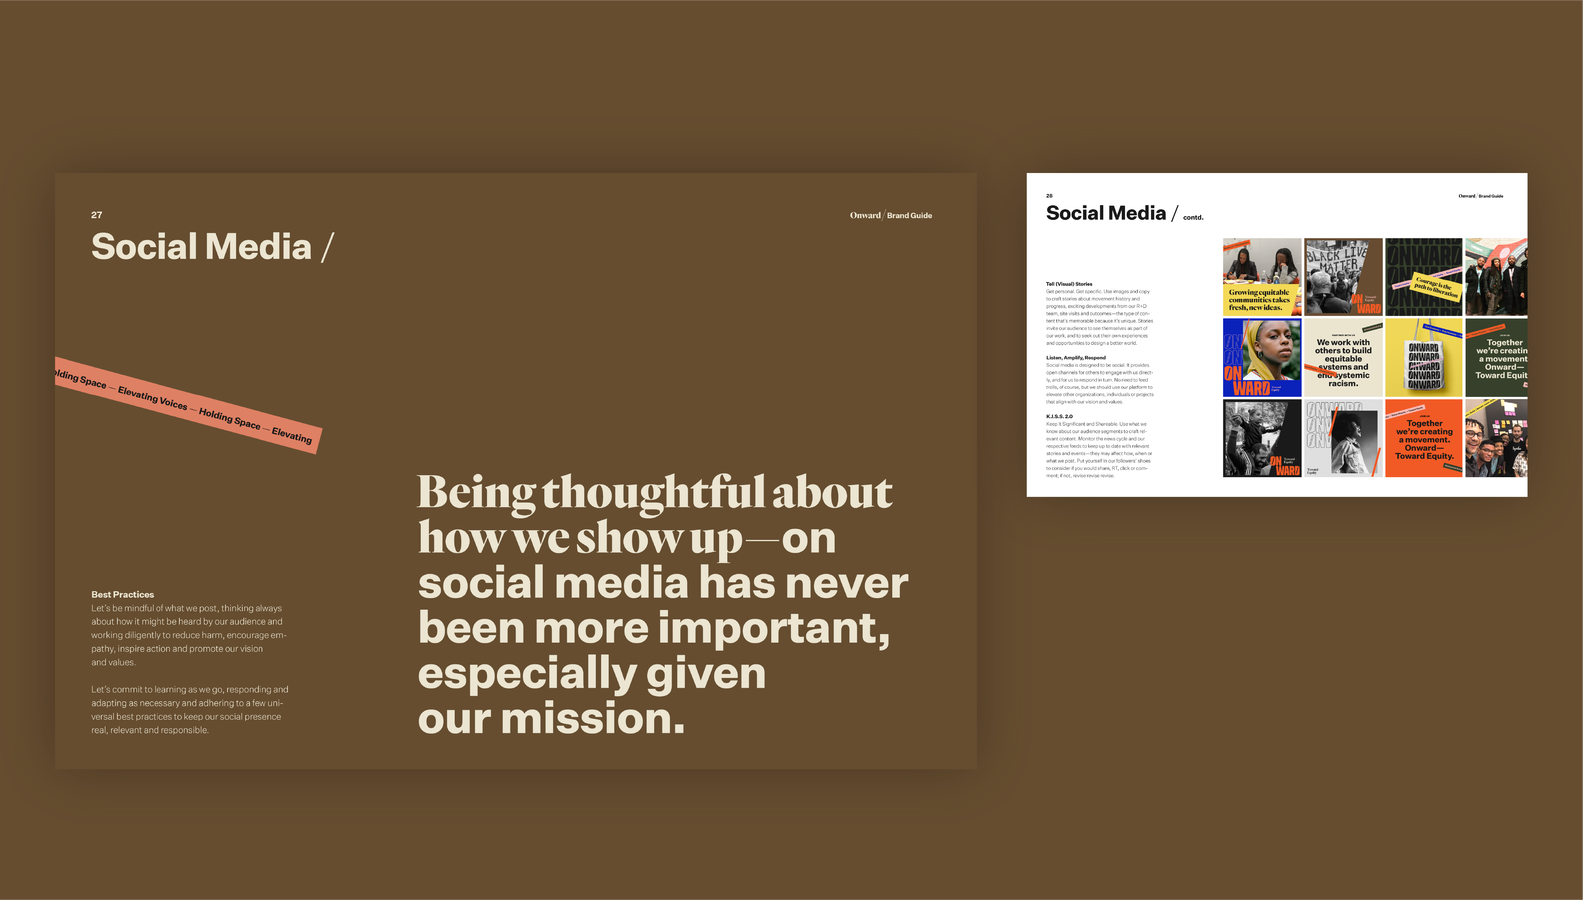 Onward brand guide social media guidelines page